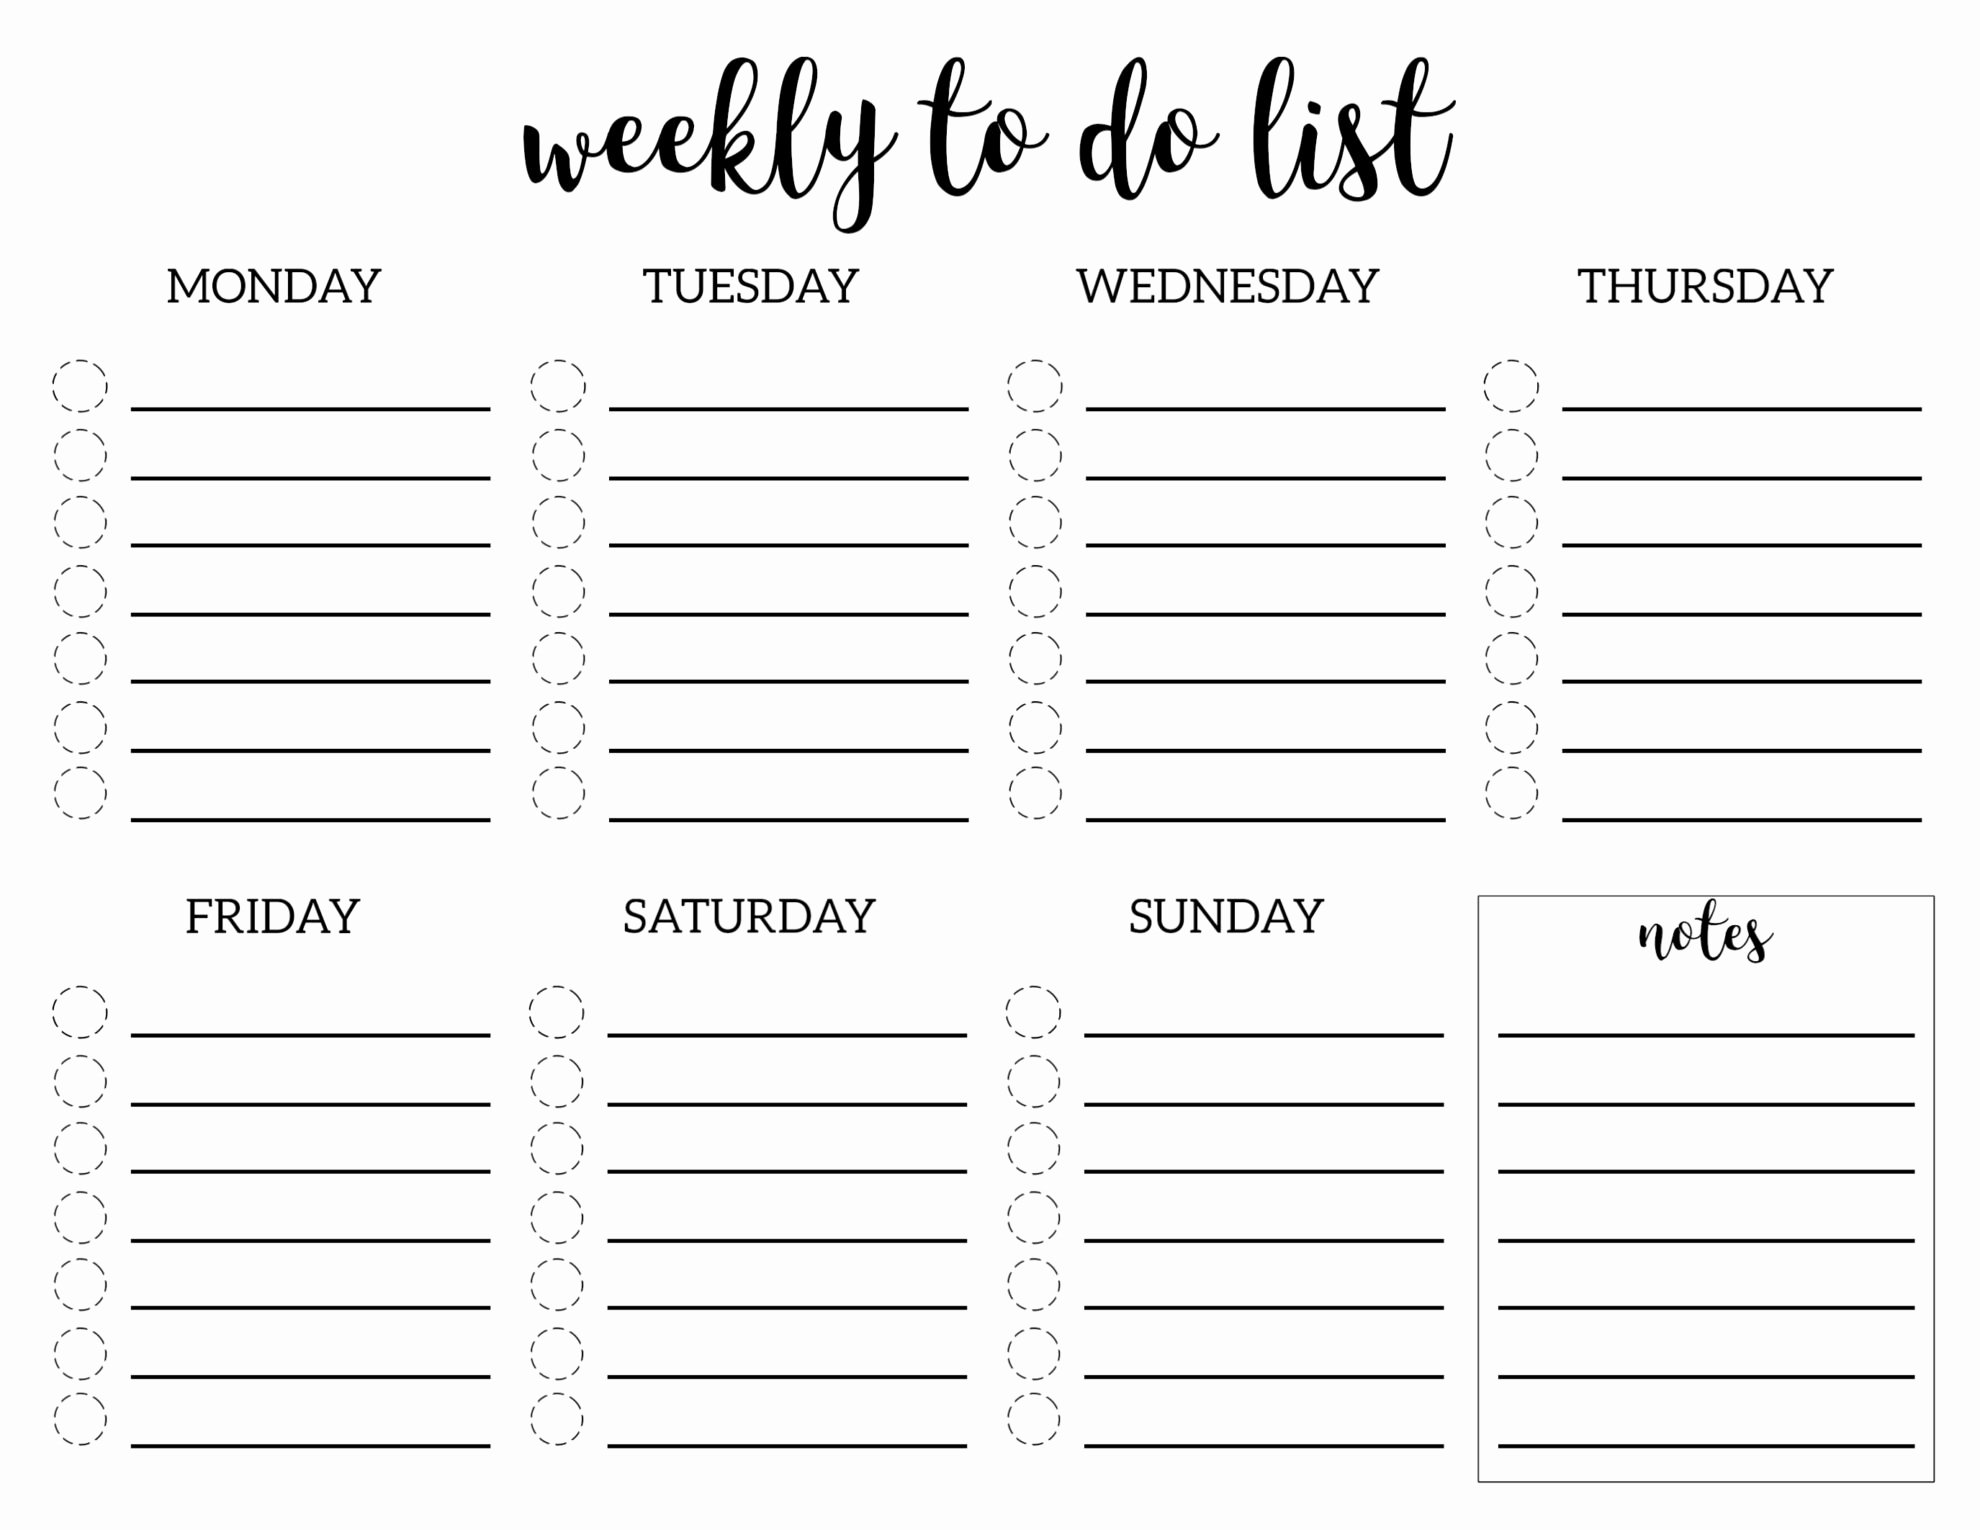 Weekly to Do List Template Luxury Weekly to Do List Printable Checklist Template Paper